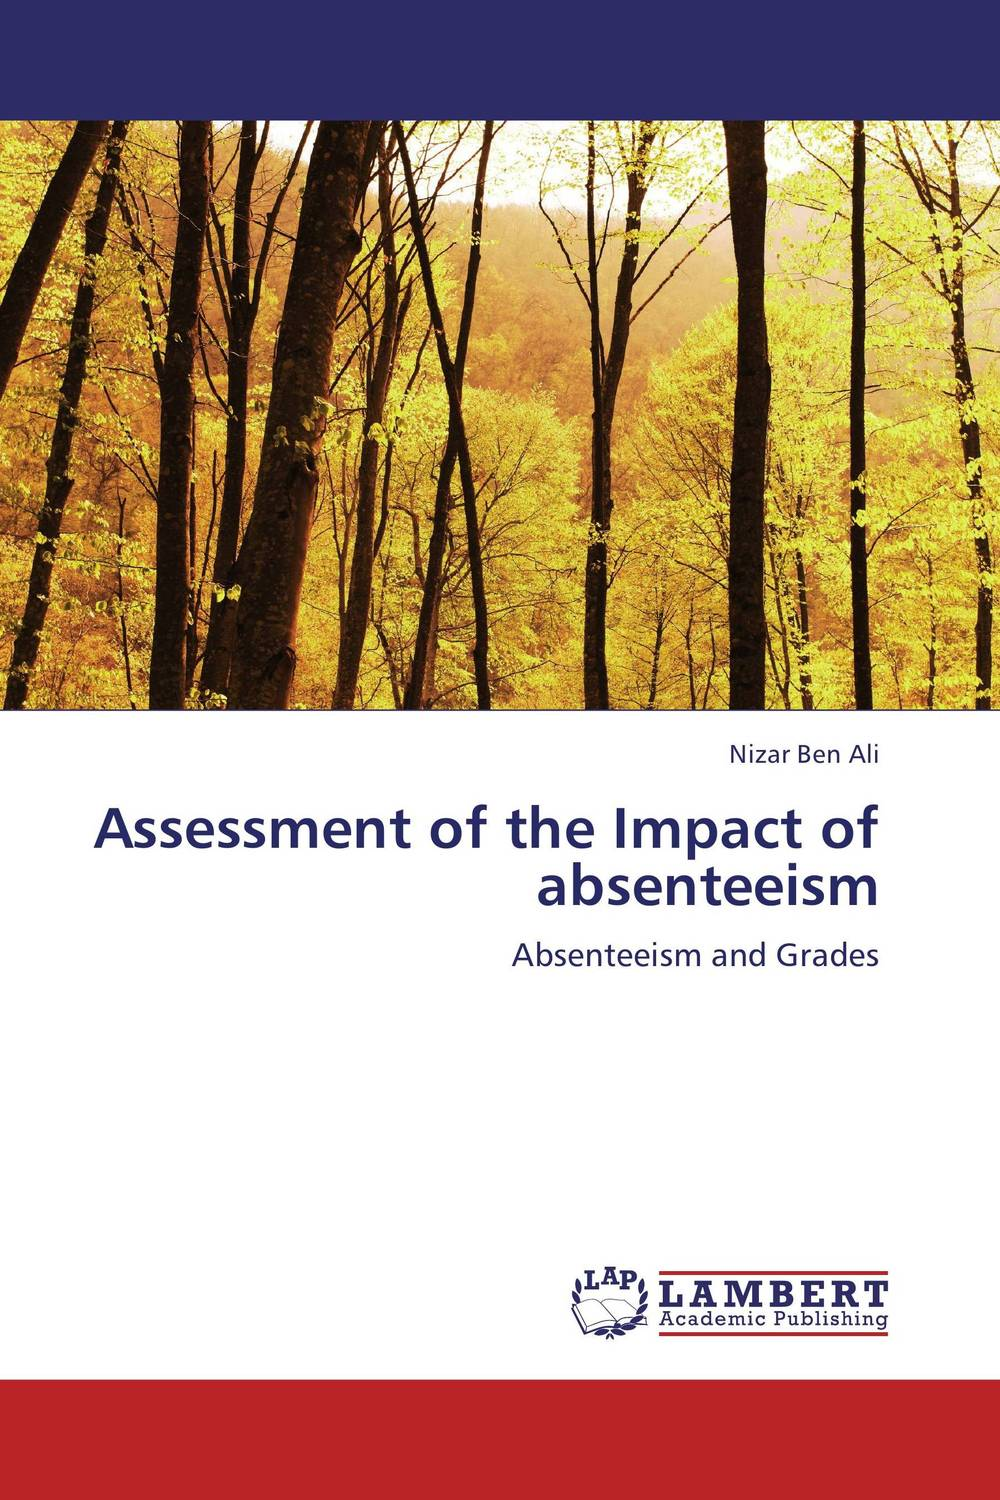 Assessment of the Impact of absenteeism k mukerji mukerji assessment of delinquency – an examinati on of personality